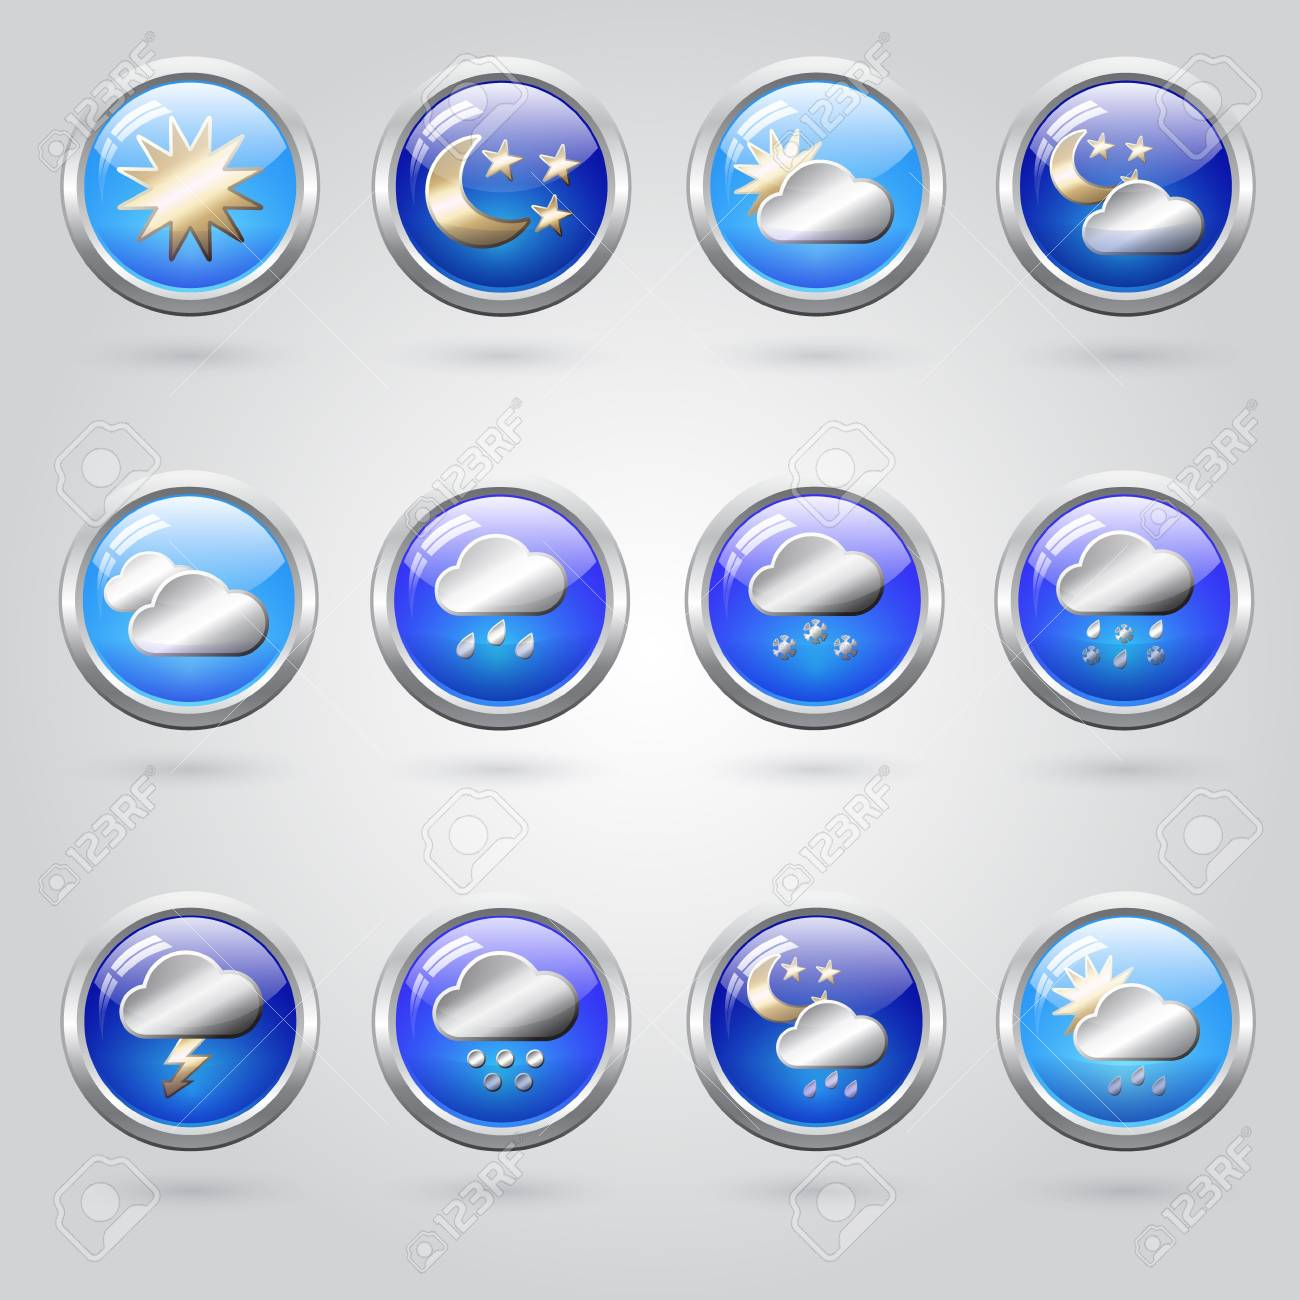 Set of stylish weather icon buttons for web Stock Vector - 19313424